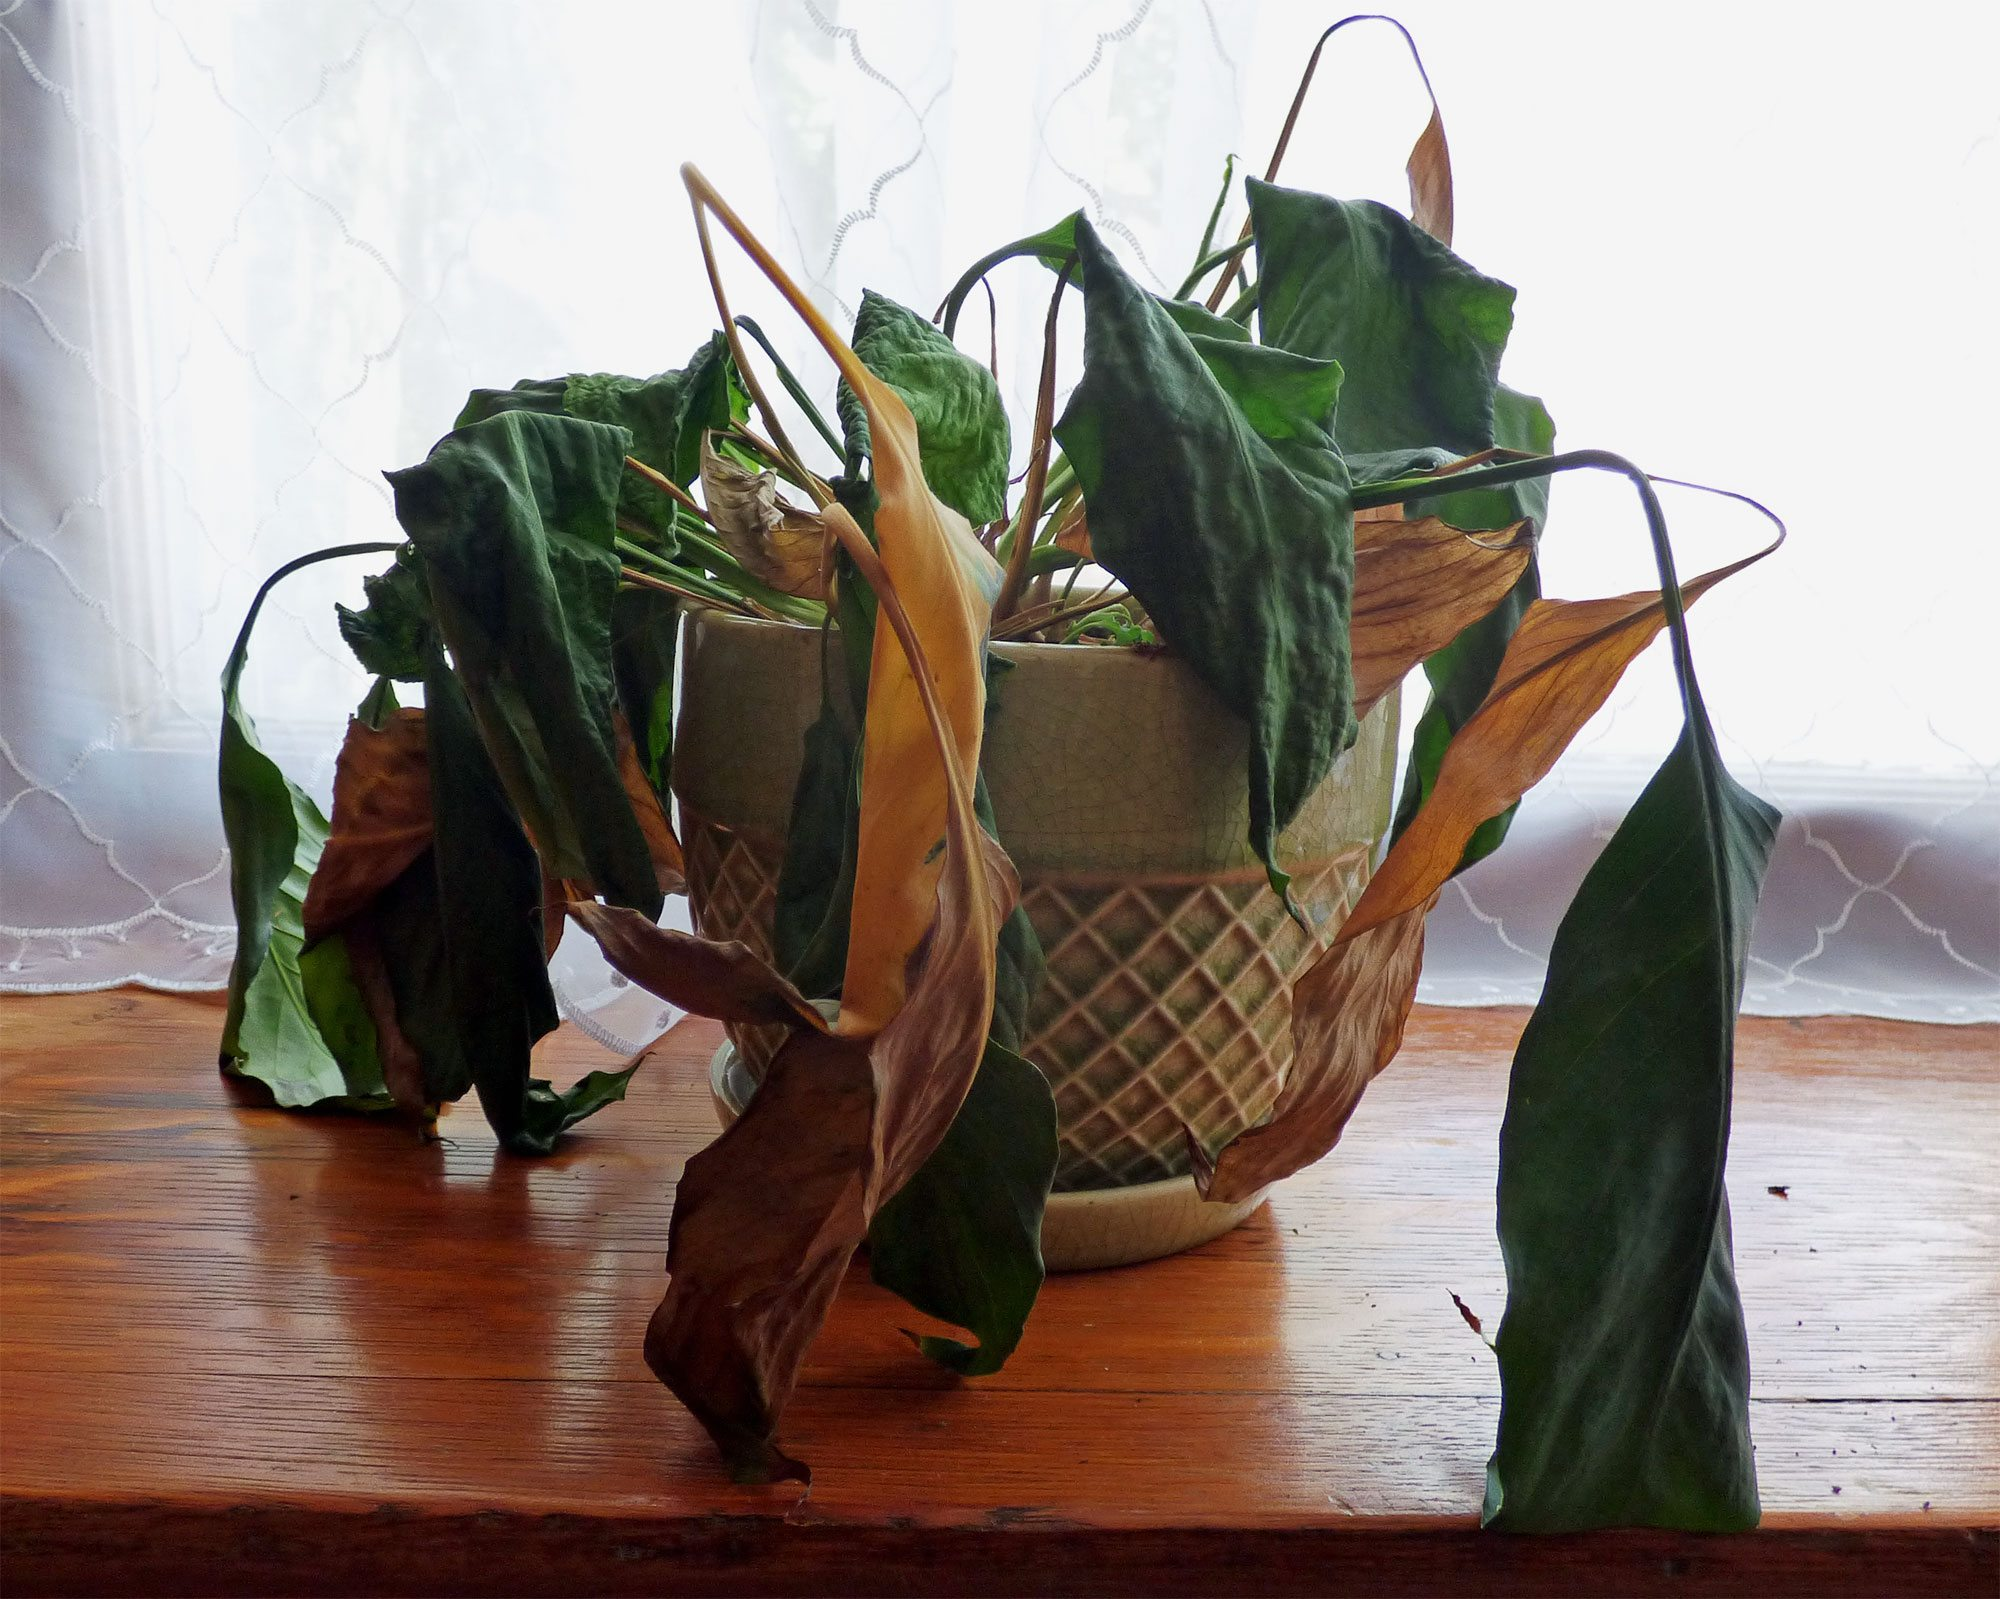 How Do You Tell If A Plant Is Dead